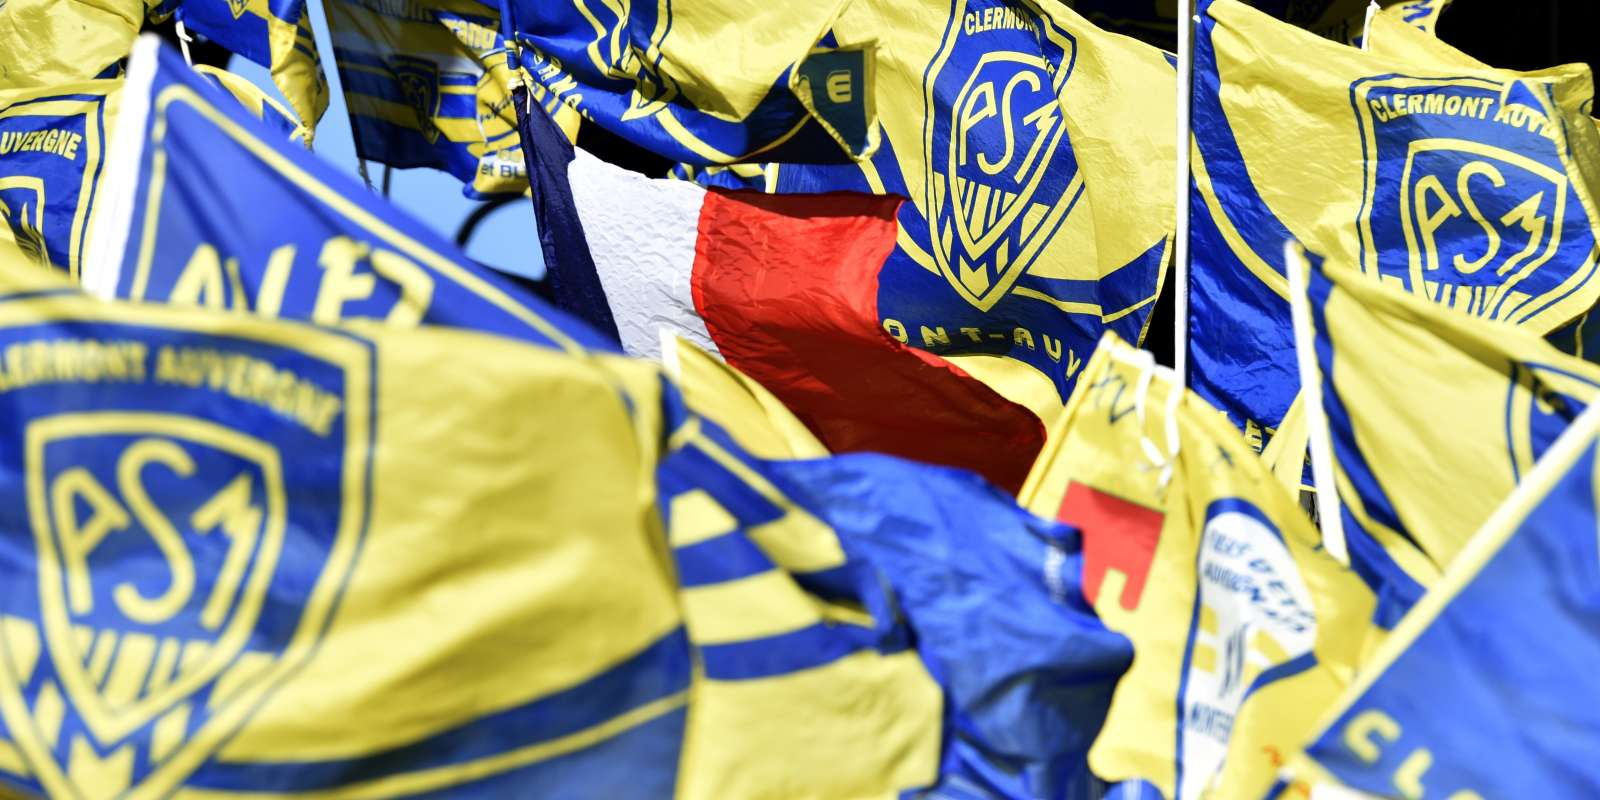 Les supporteurs de Clermont lors du match face à Leinster, le 23 avril.